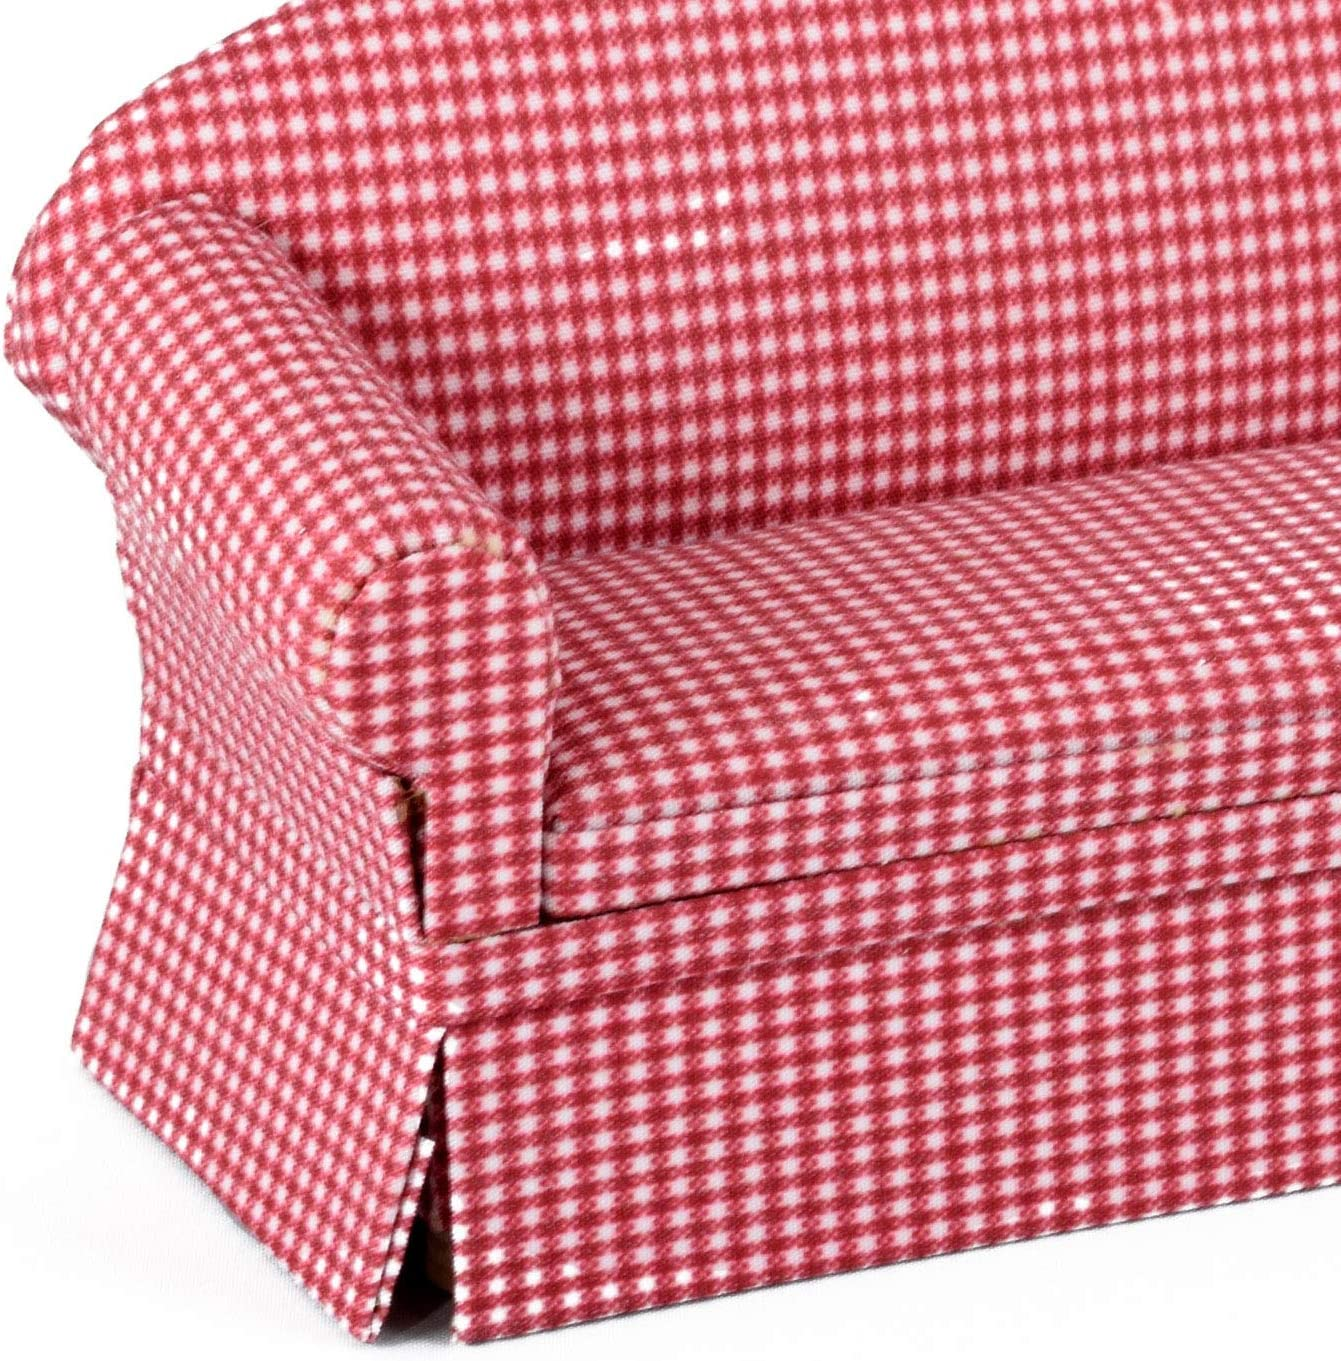 Dolls House Furniture Couch /& Chair Red Checkered Inusitus Set of Matching Dollhouse Sofa /& Armchair red Check 1//12 Scale